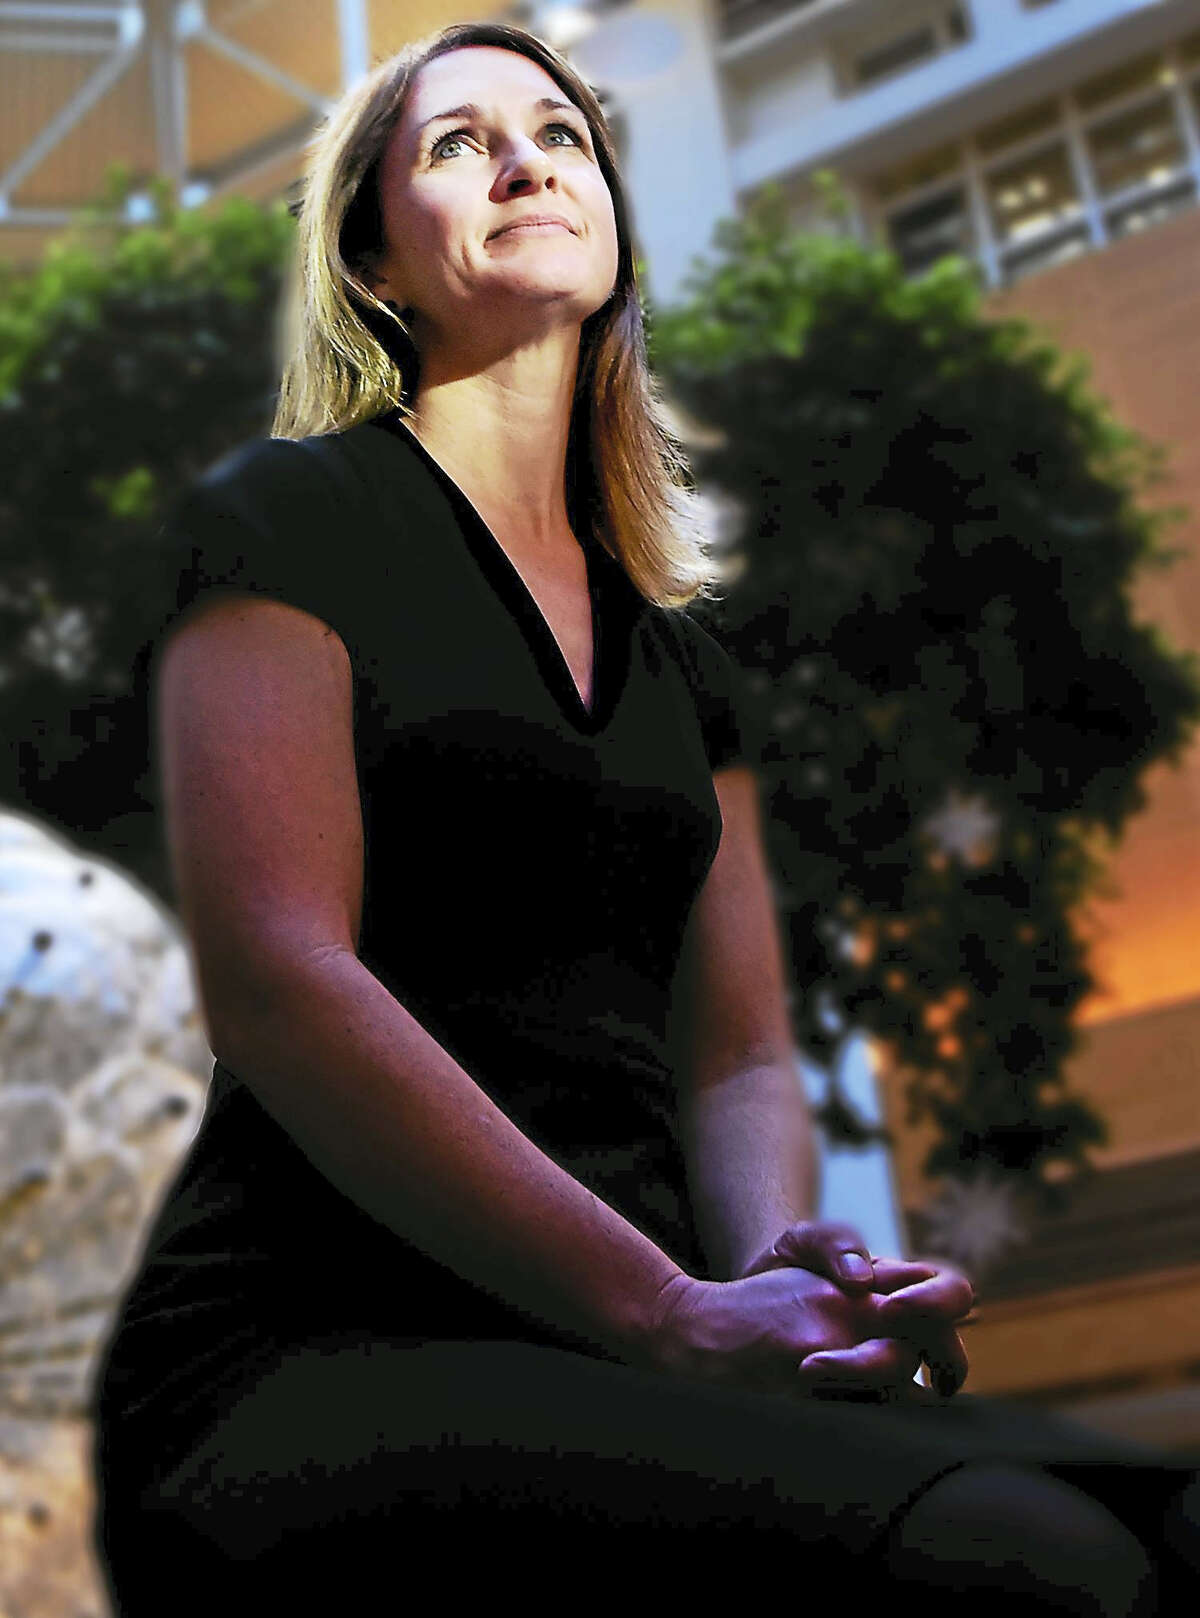 Dr. Tara Sanft, M.D., Breast Medical Oncologist, Assistant Professor of Medicine, and Director of the Yale Cancer Center Survivorship in the Atrium of Yale New Haven Hospital Monday, Dec. 19, 2016.